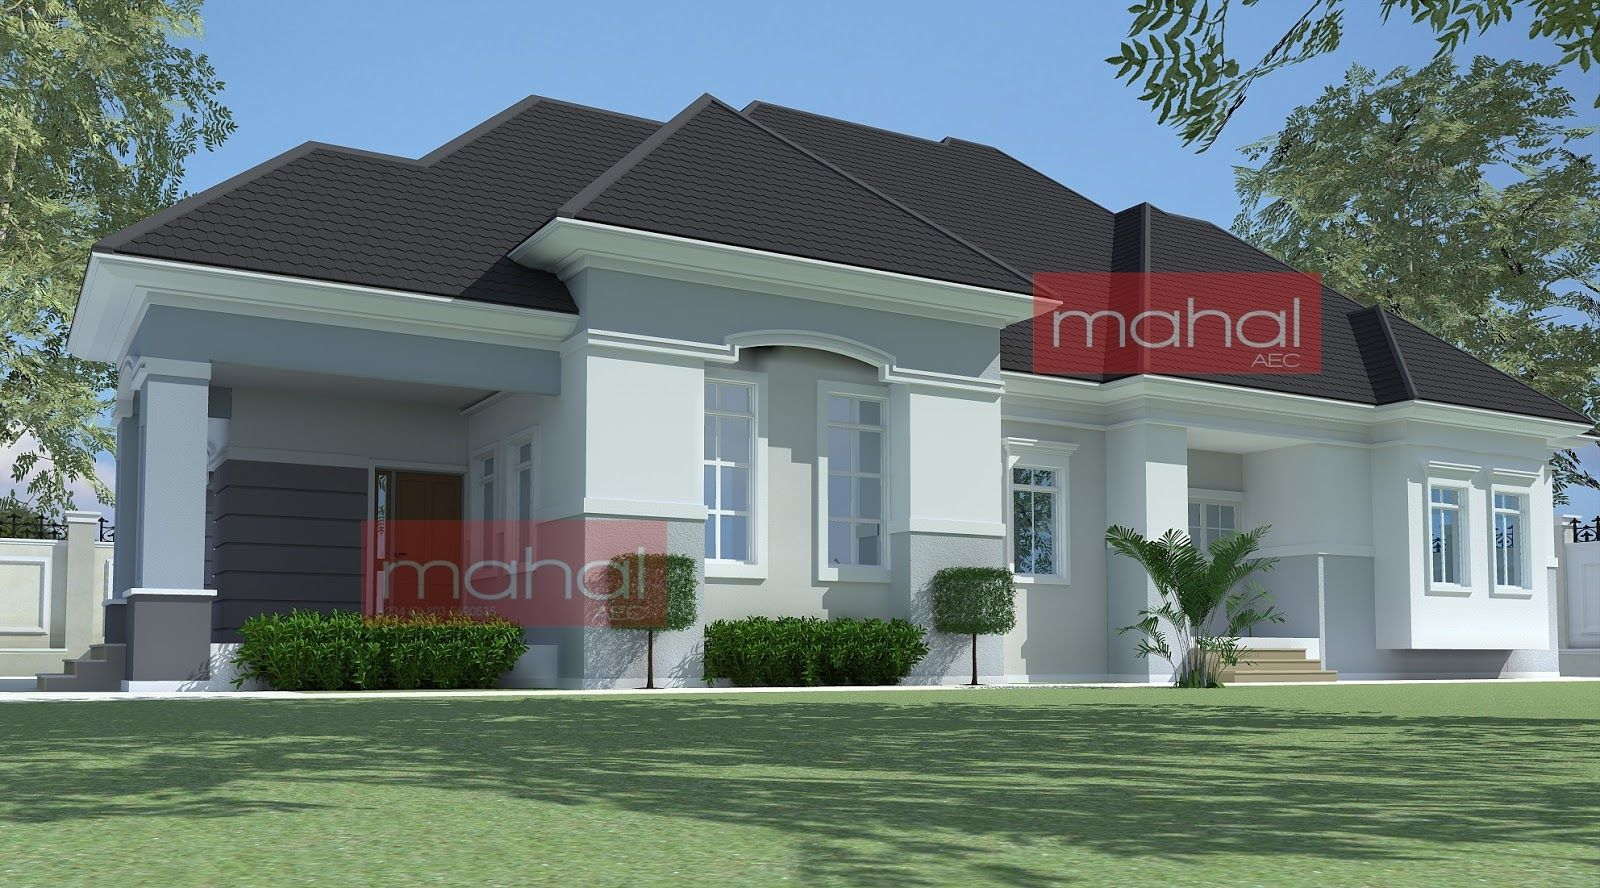 4 bedroom bungalow plan in nigeria 4 bedroom bungalow for Nigerian architectural designs